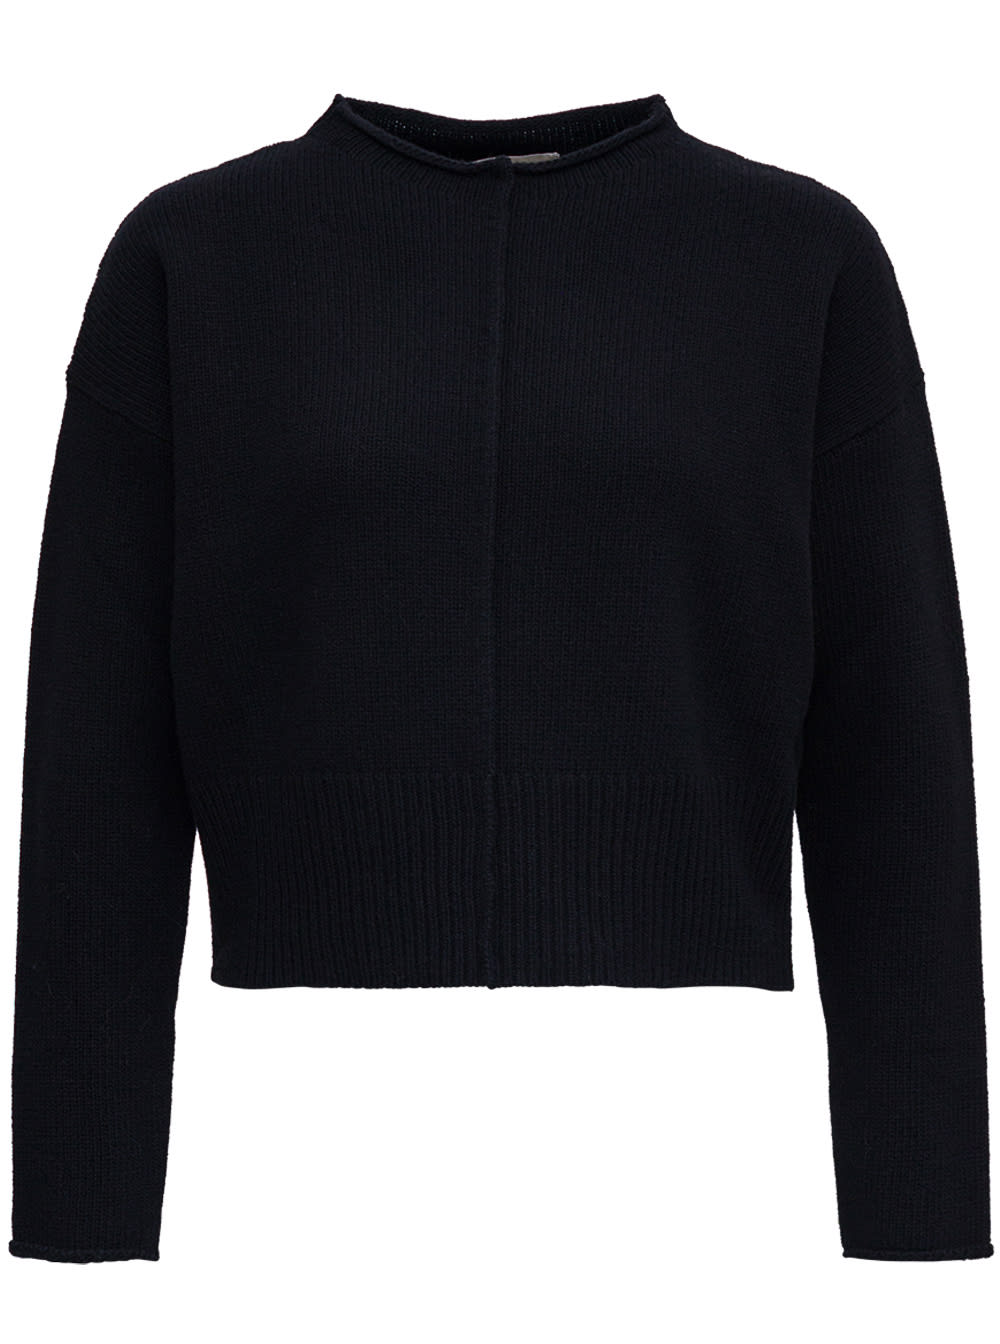 Black Wool Sweater With Boat Neck